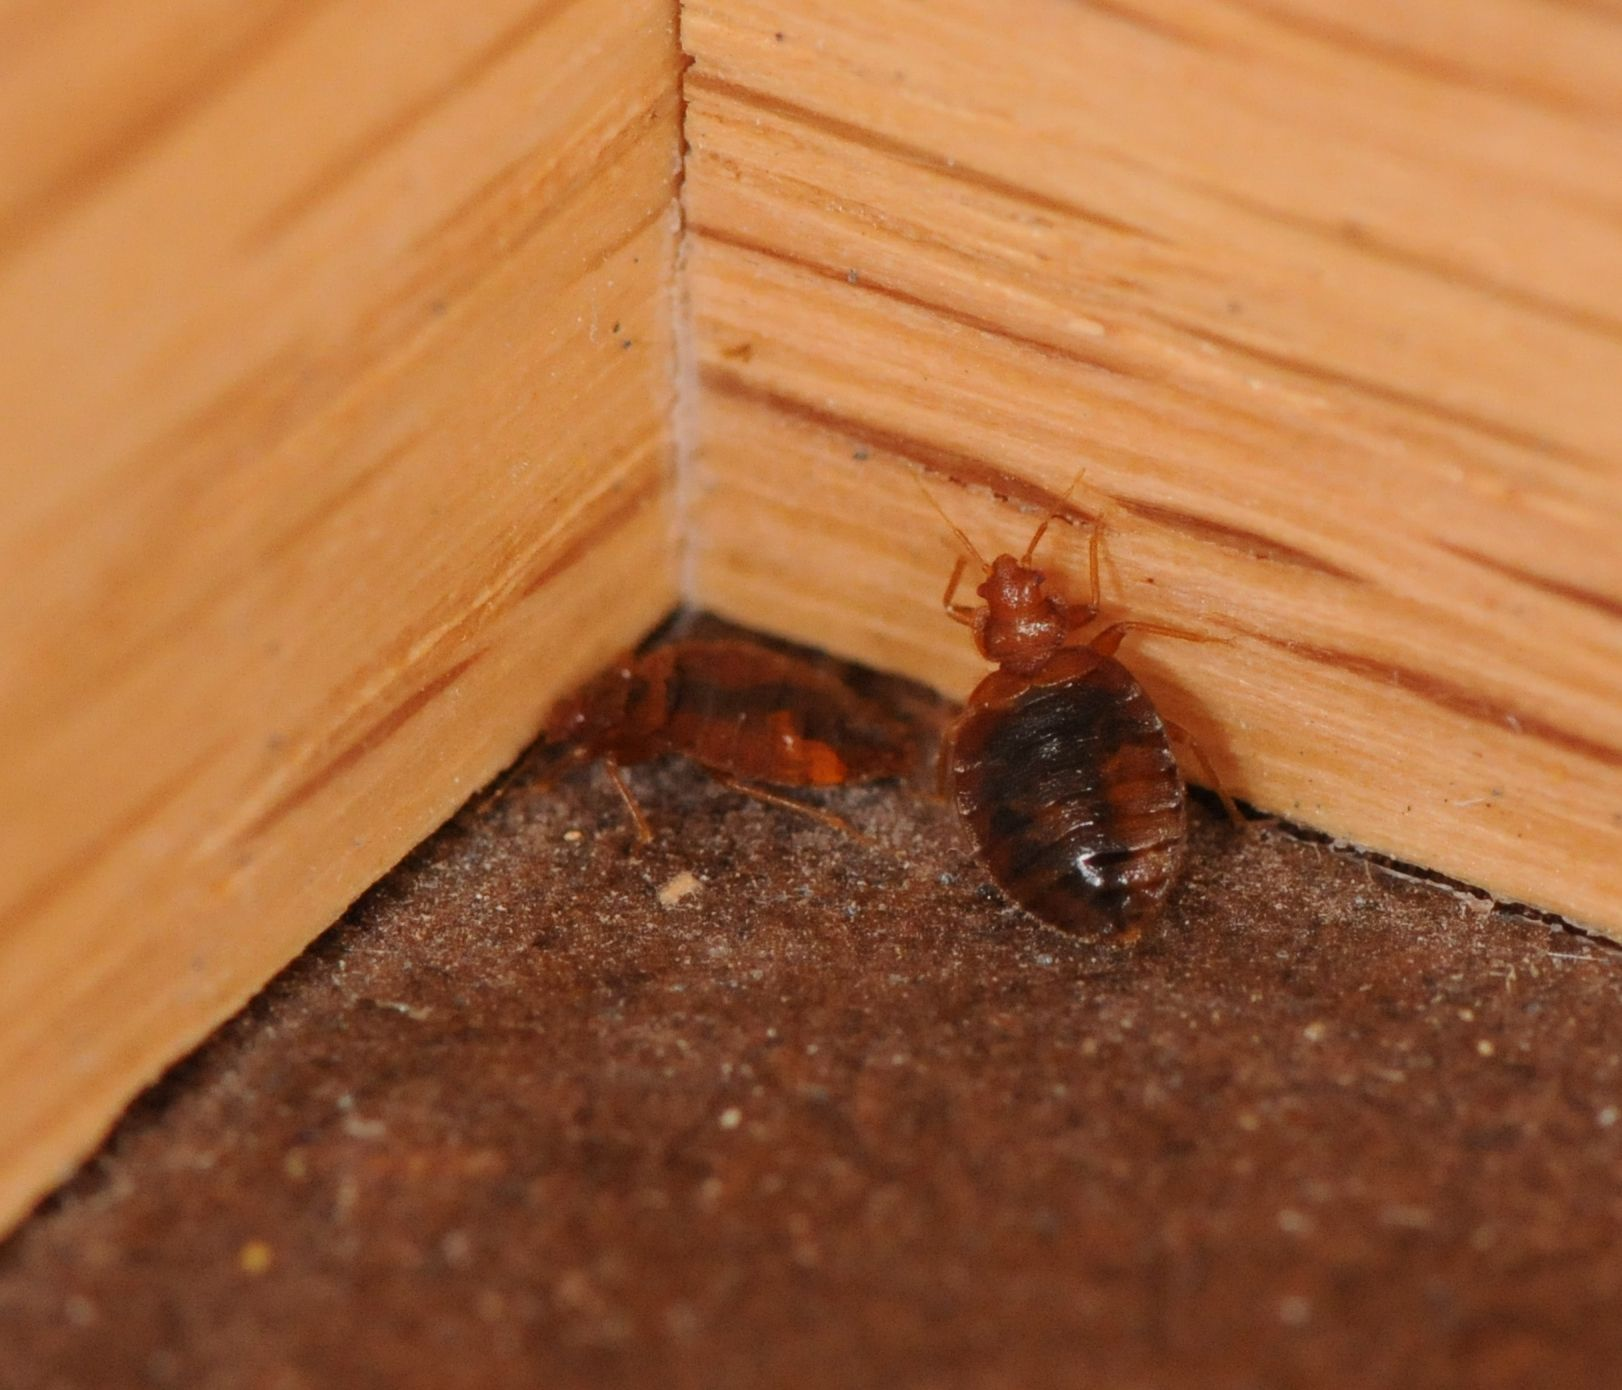 Bed bugs in corner of room. Bed bugs, Bed bugs pictures